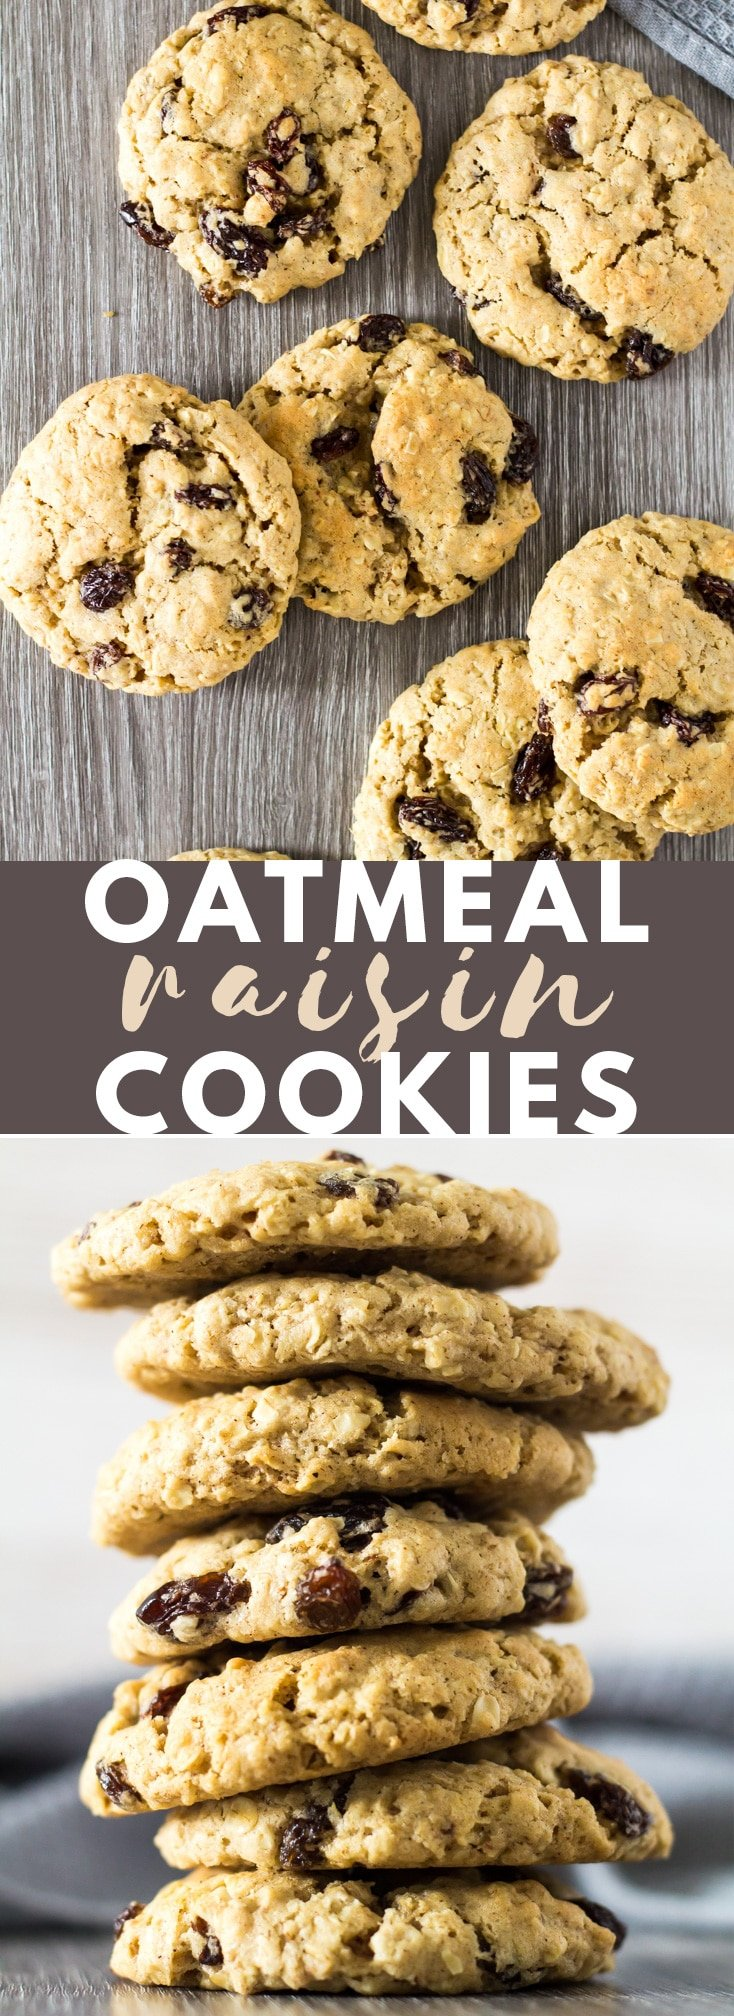 Oatmeal Raisin Cookies - Deliciously thick and chewy oatmeal cookies that are perfectly spiced with cinnamon and nutmeg, and loaded with raisins!